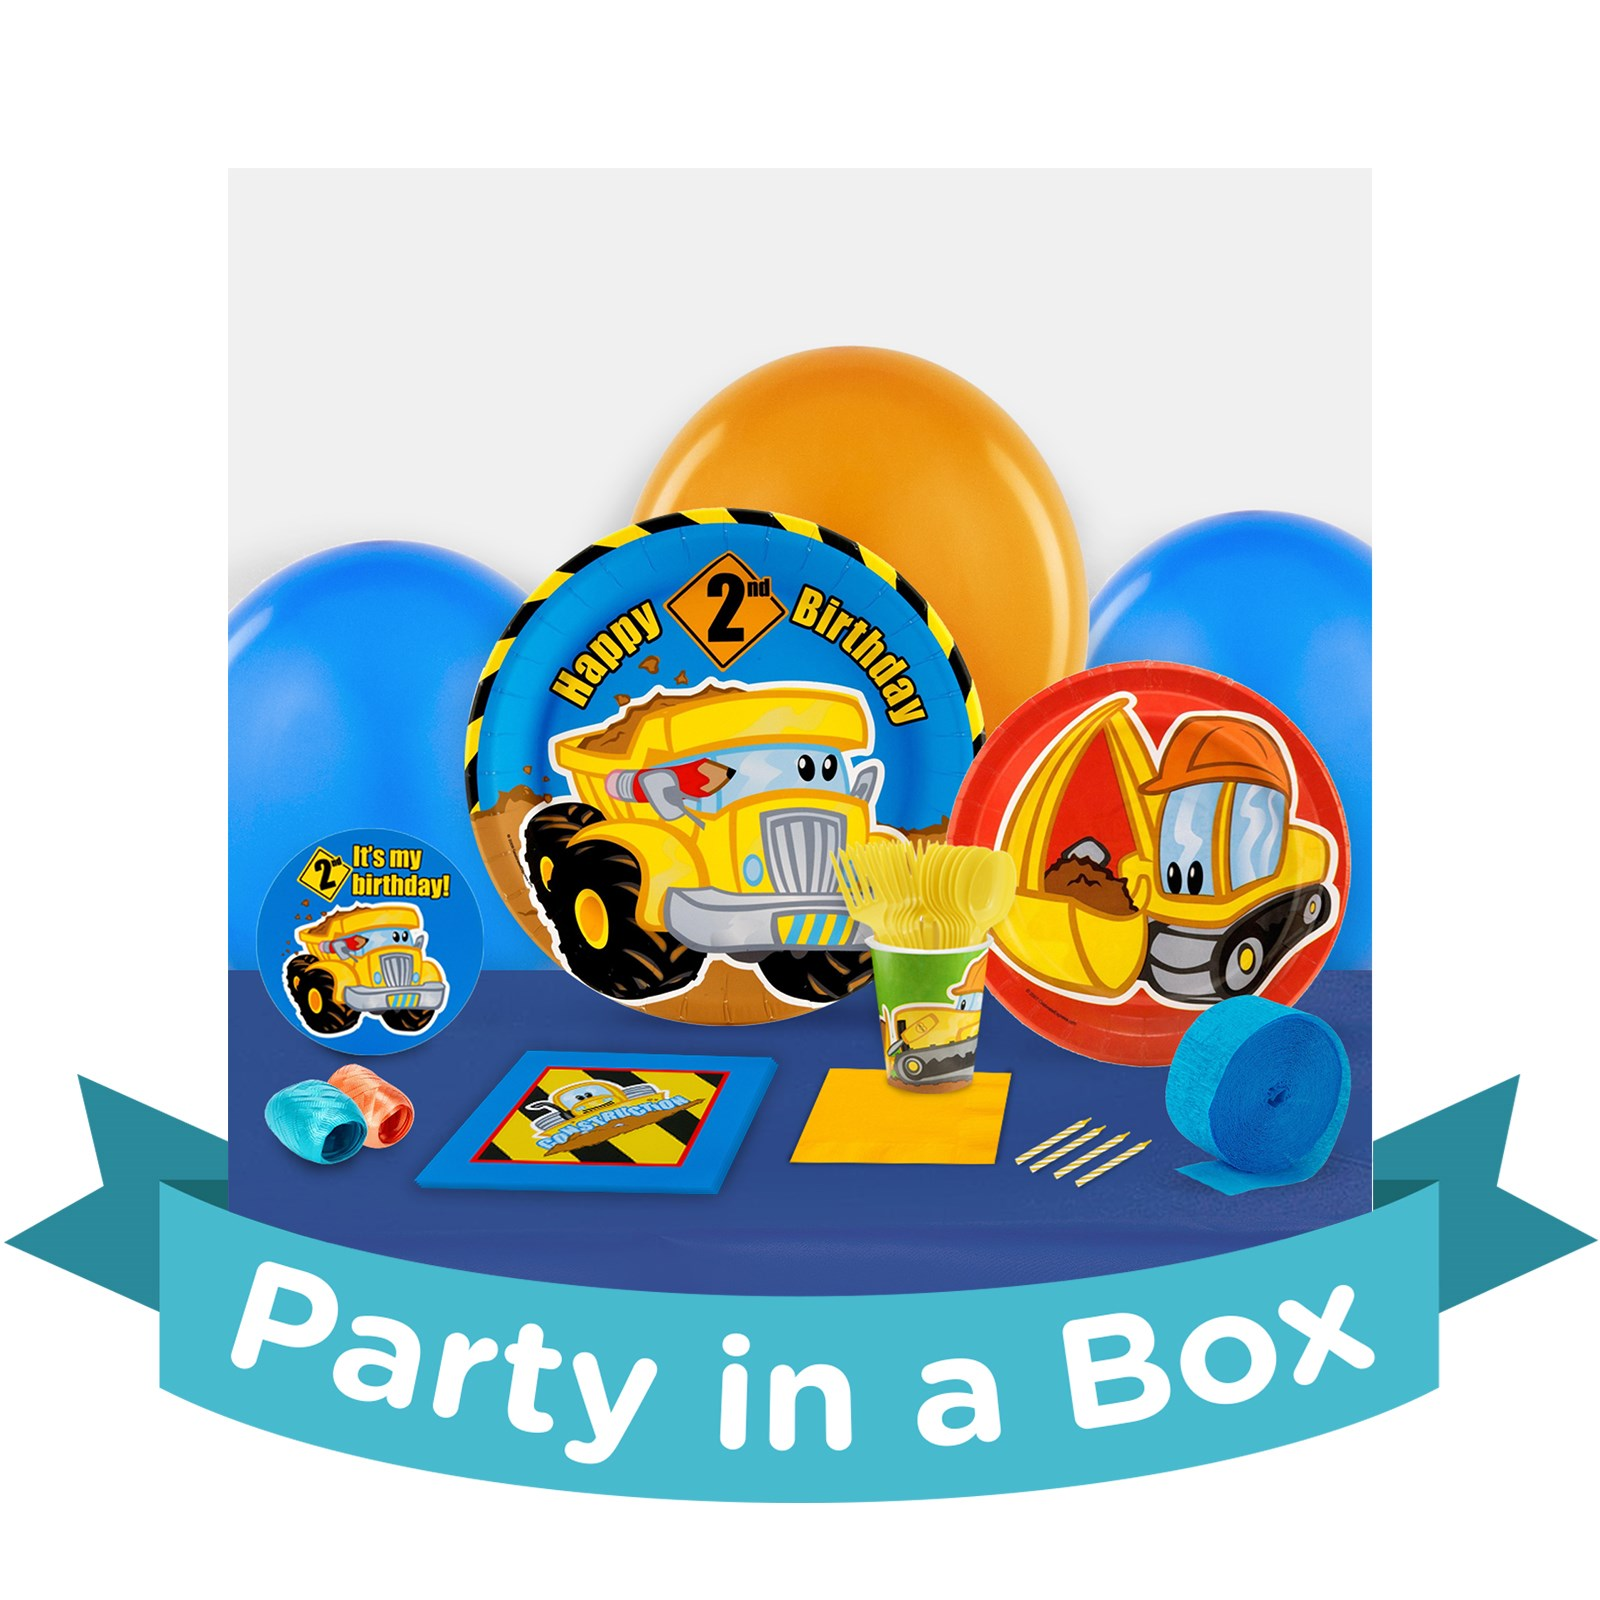 Image of Construction Pals 2nd Birthday Party in a Box - Deluxe with Favors - 16 Guests